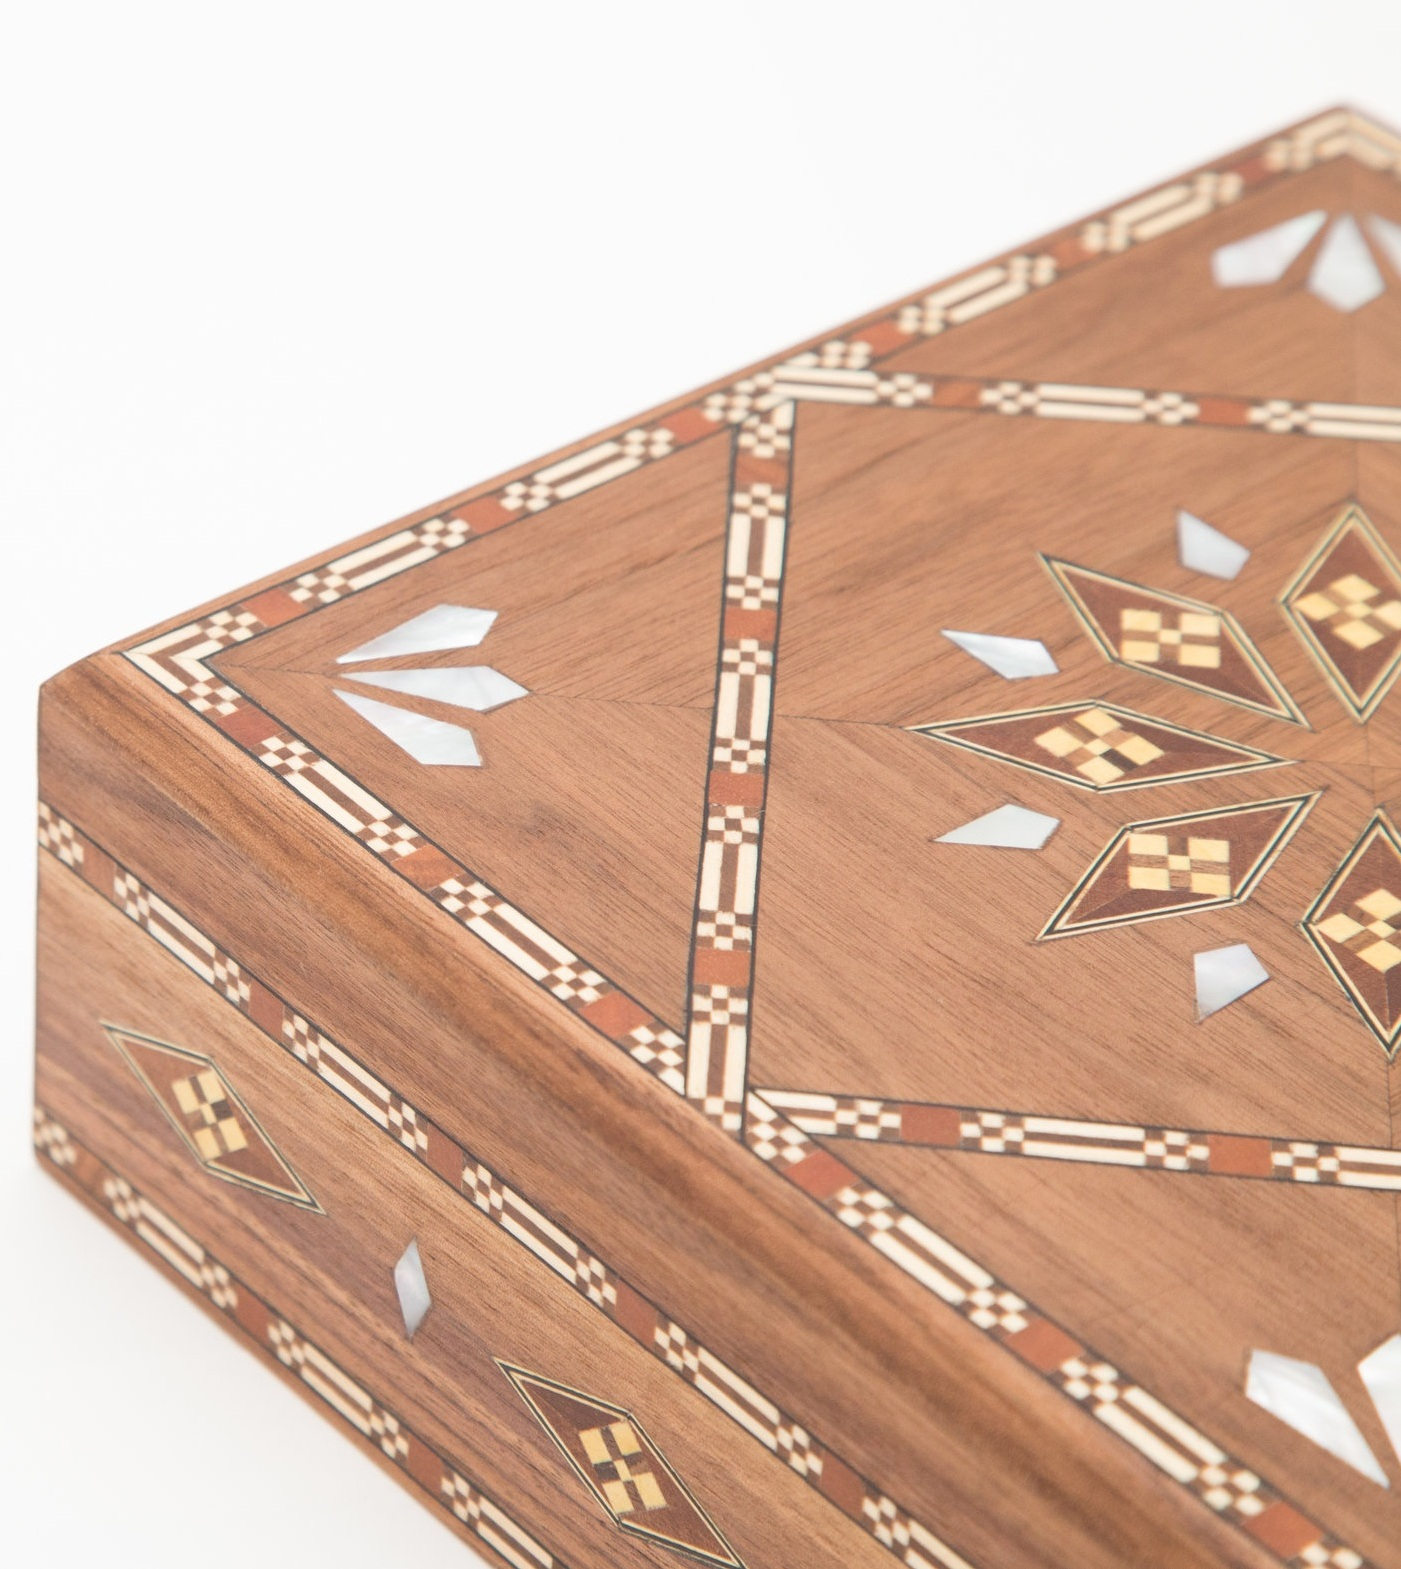 The  Square Damascene Box  with geometric mosaic inlay.